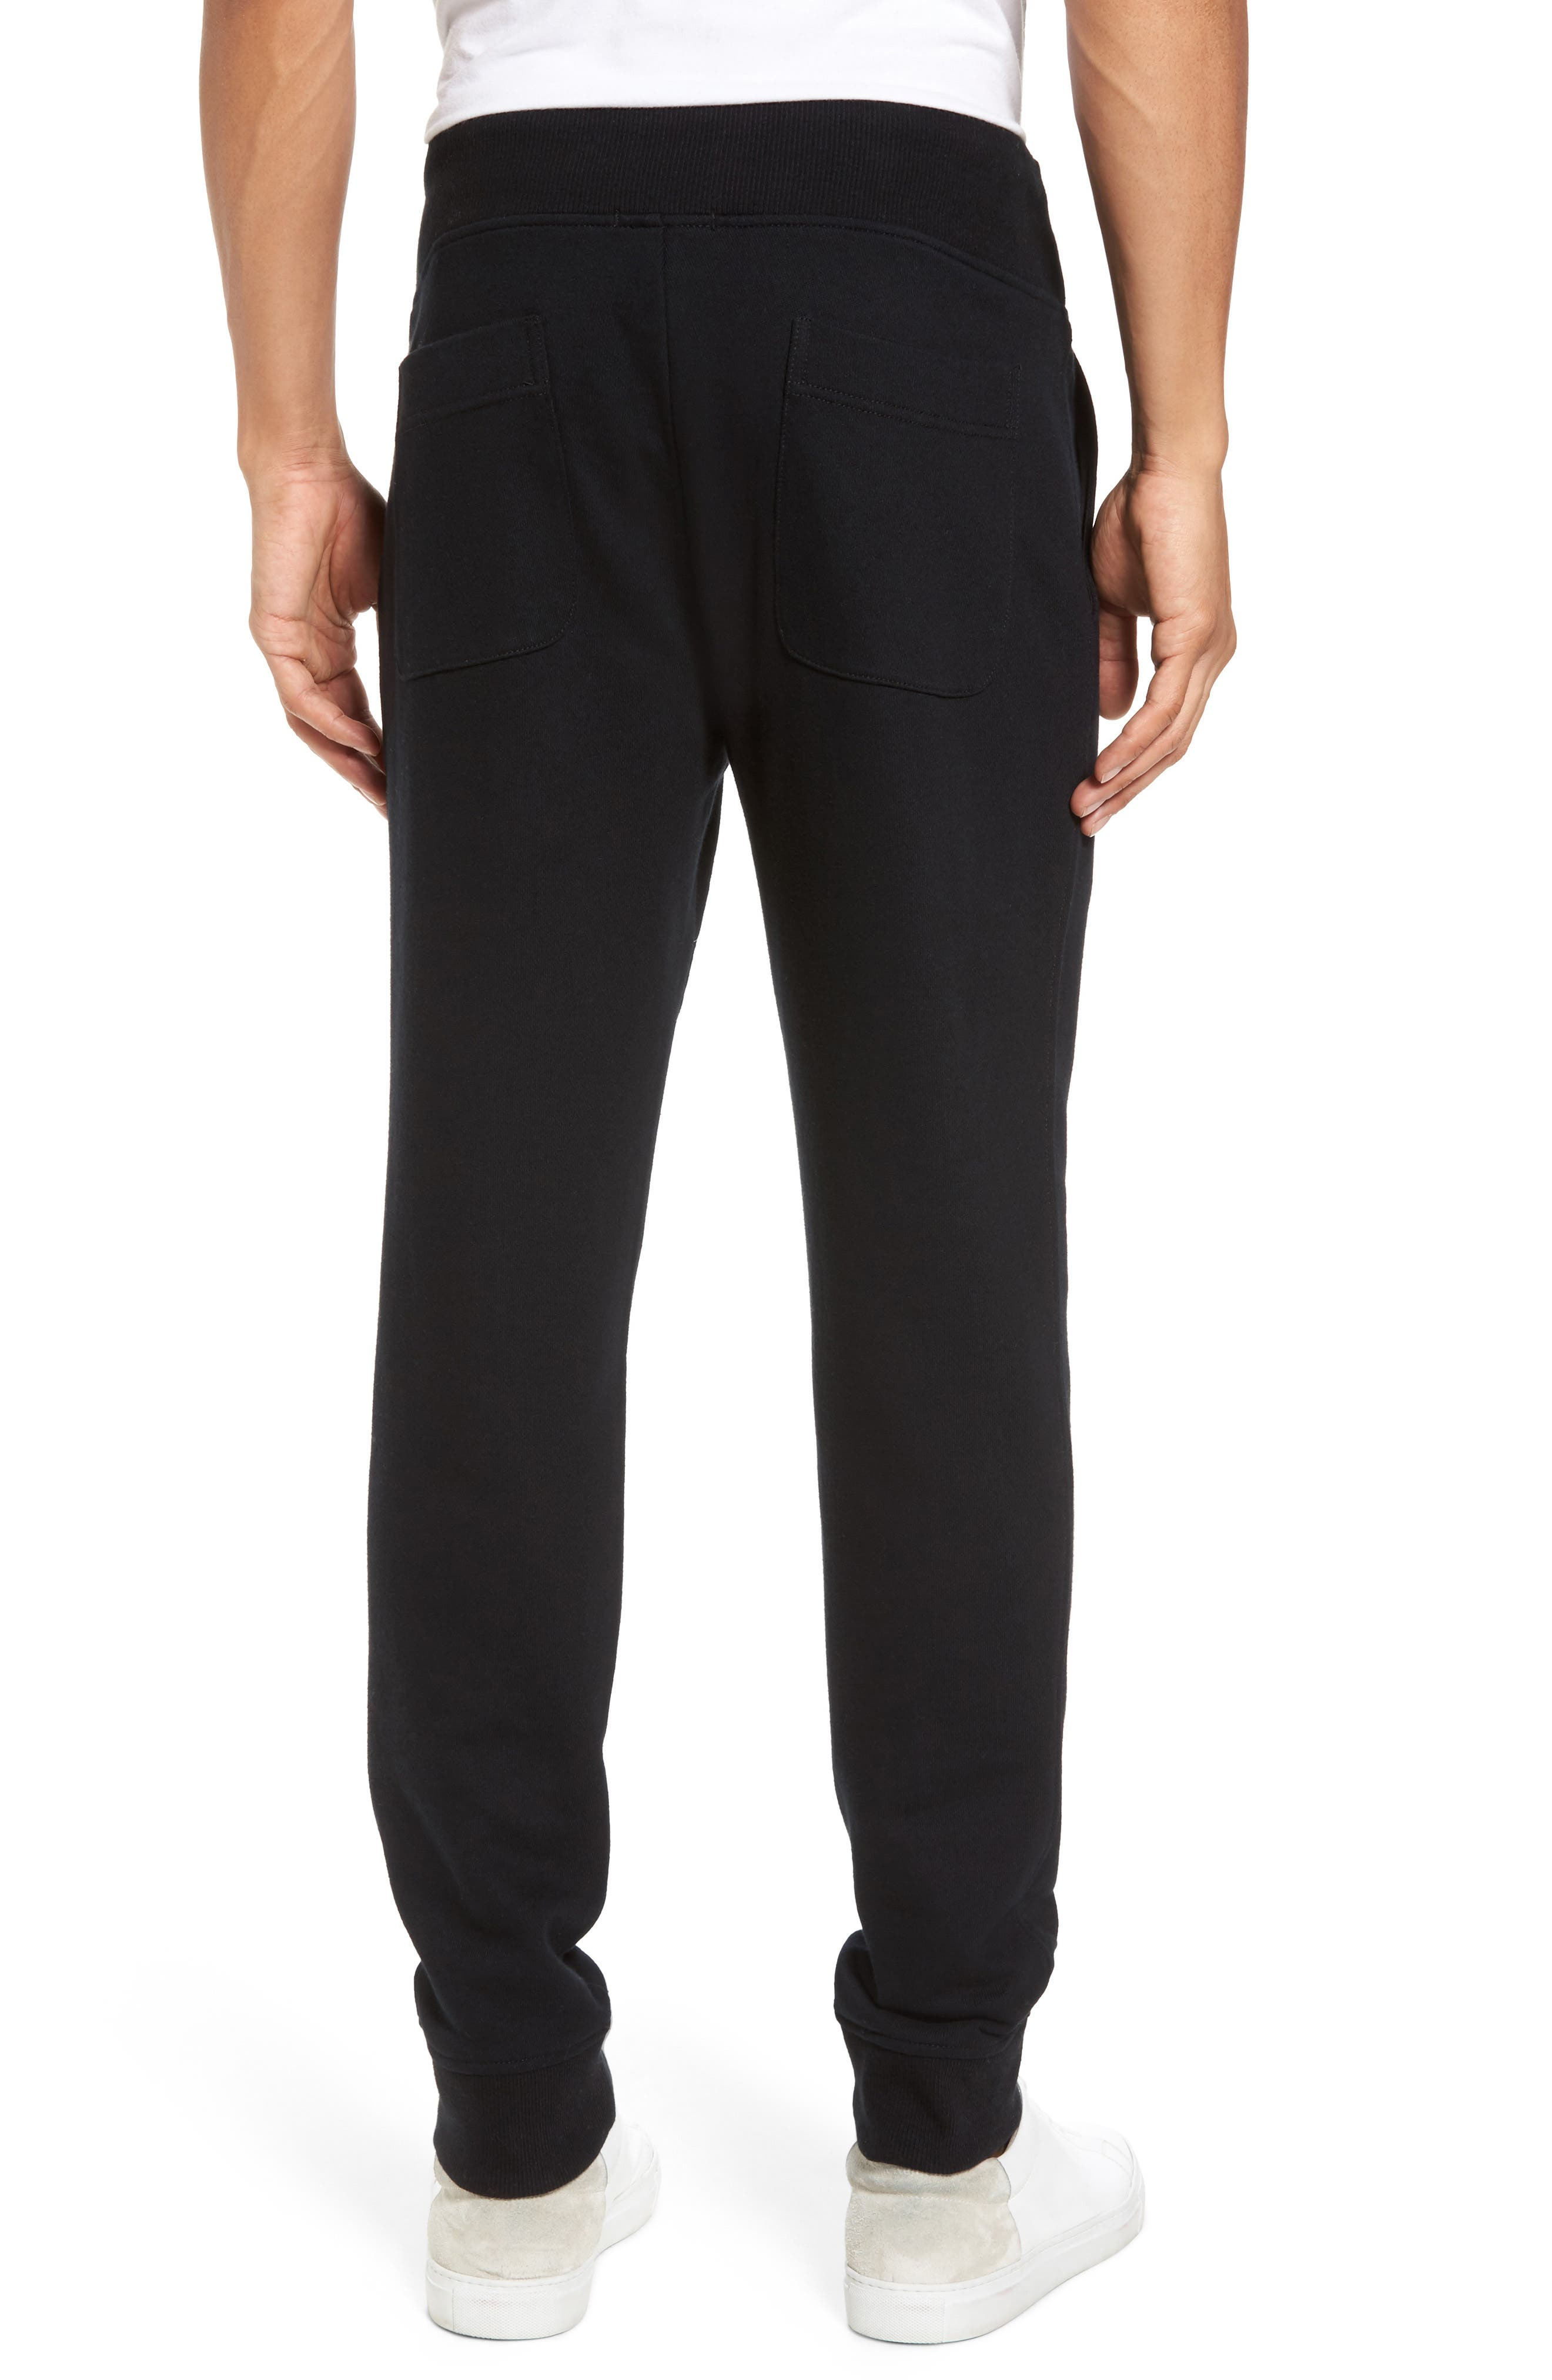 French Terry Regular Fit Sweatpants,                             Alternate thumbnail 2, color,                             Black